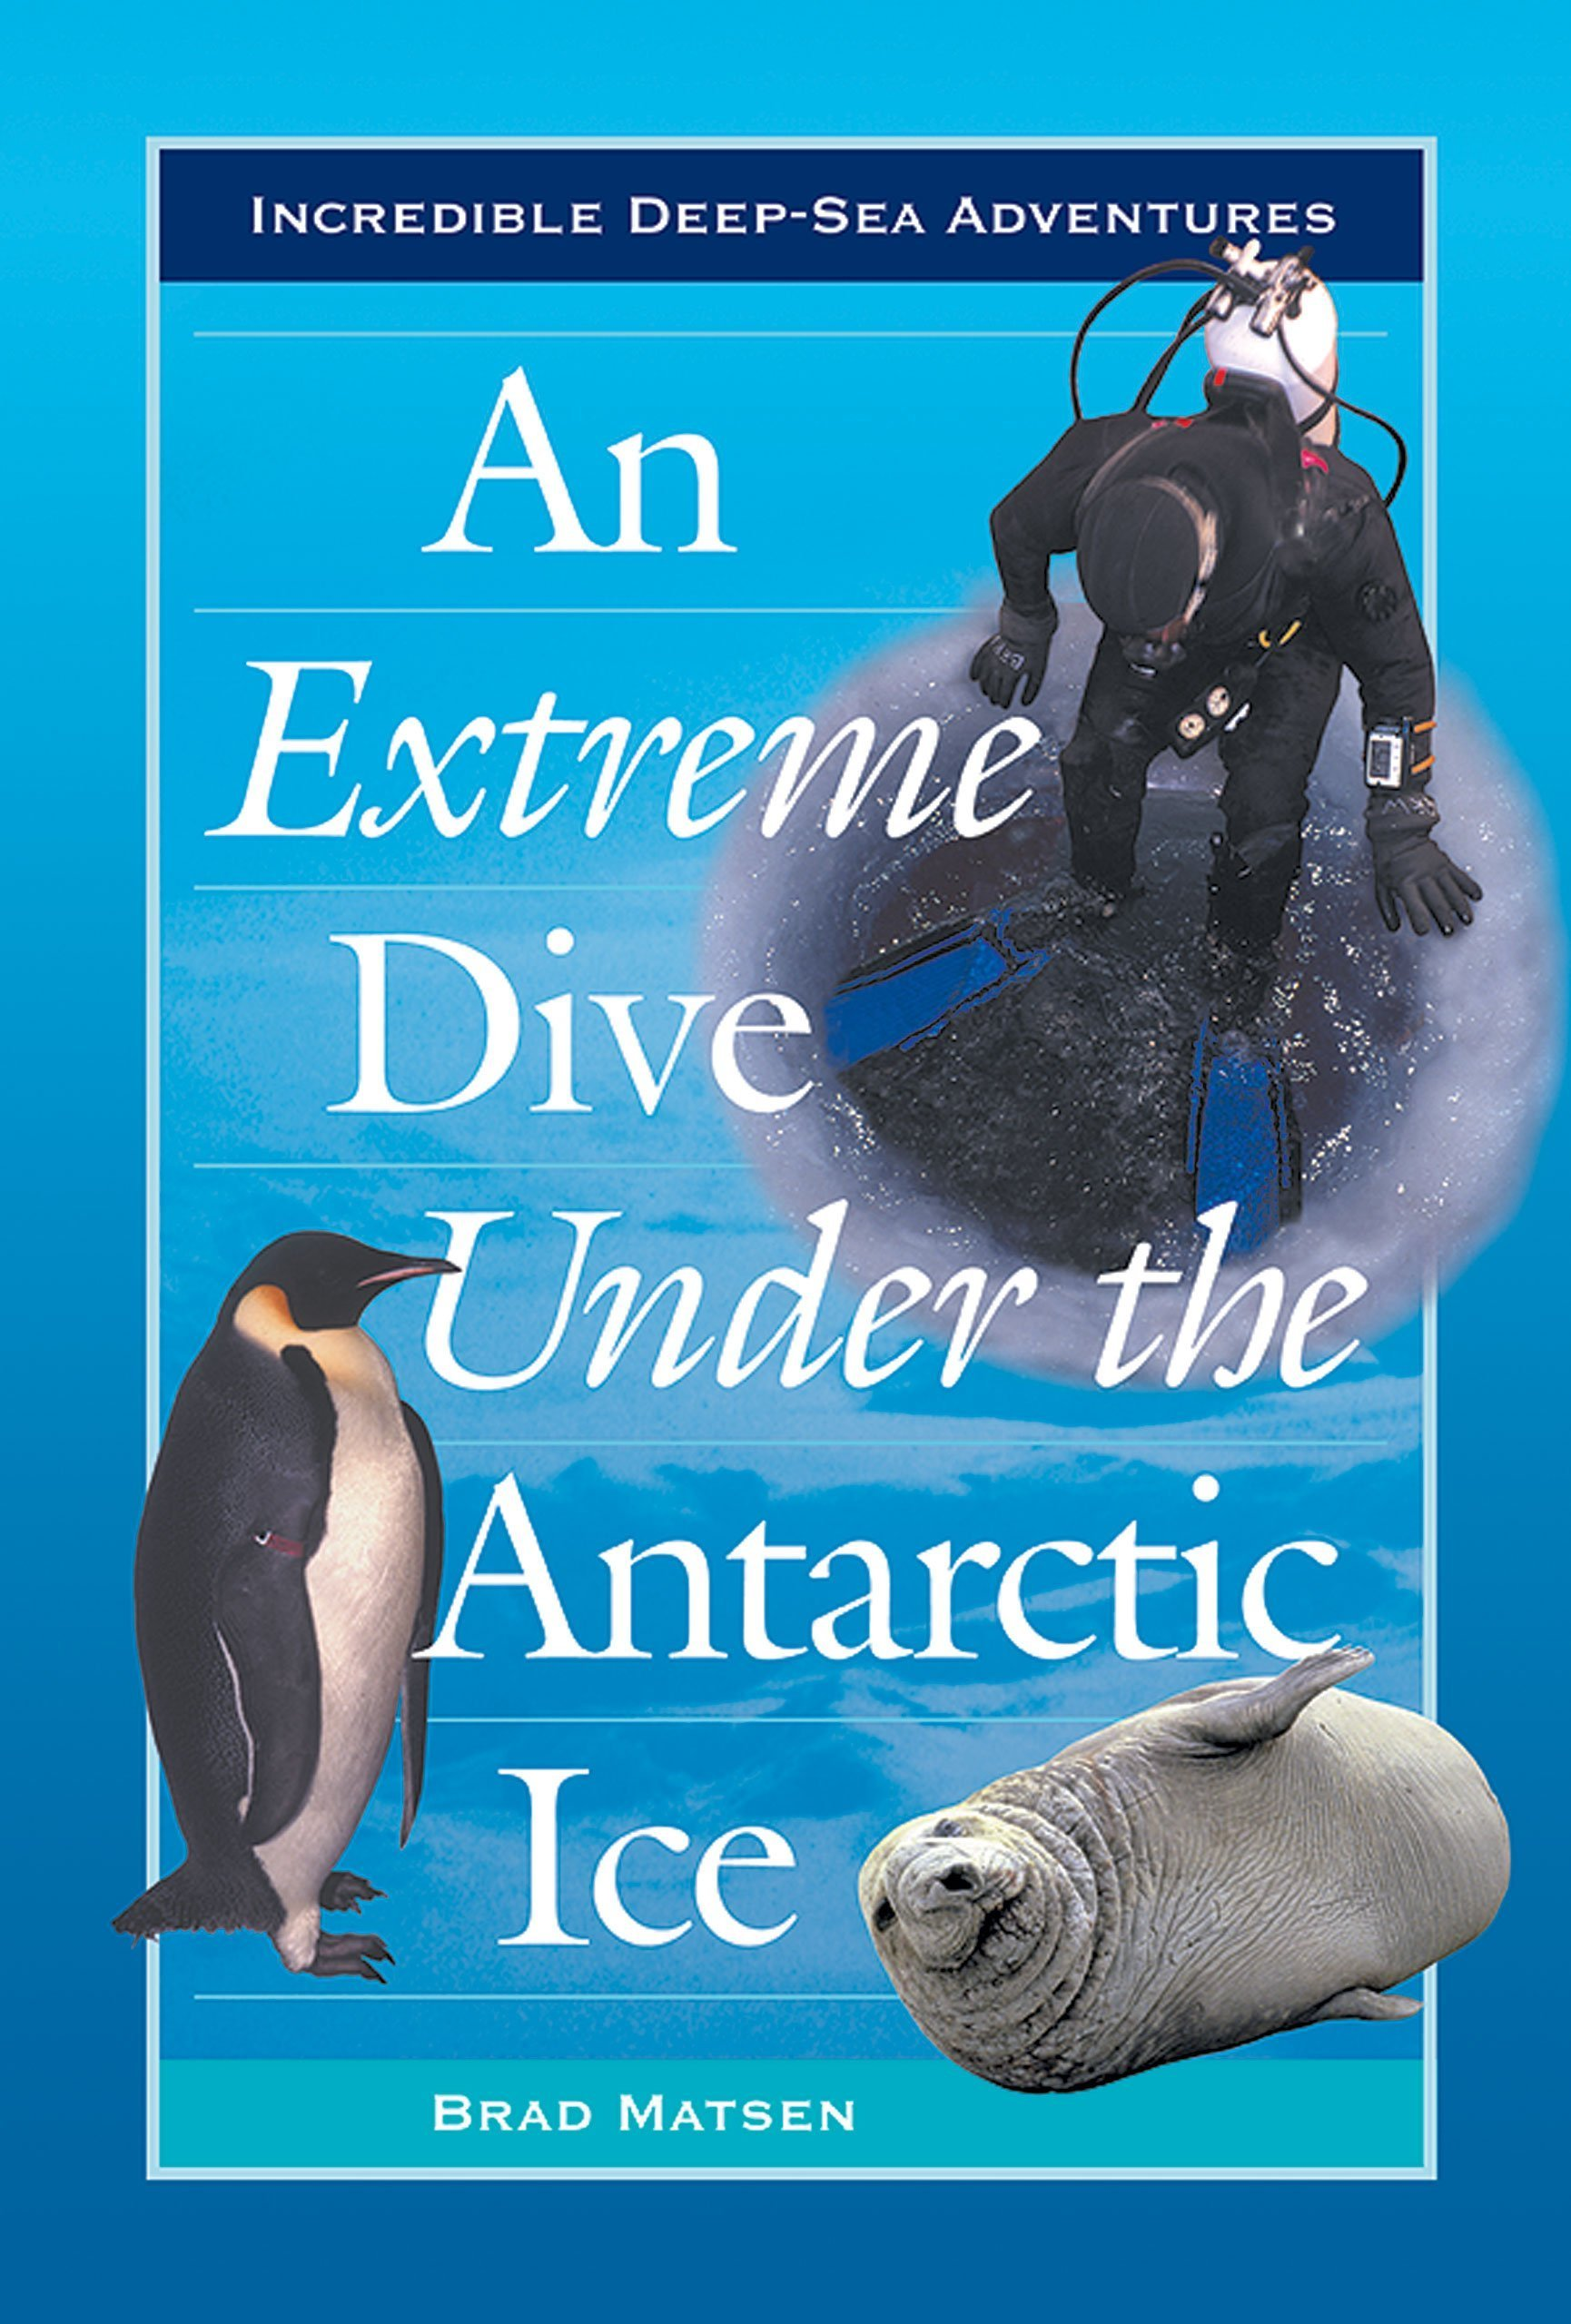 An Extreme Dive Under the Antarctic Ice (Incredible Deep-Sea Adventures) pdf epub